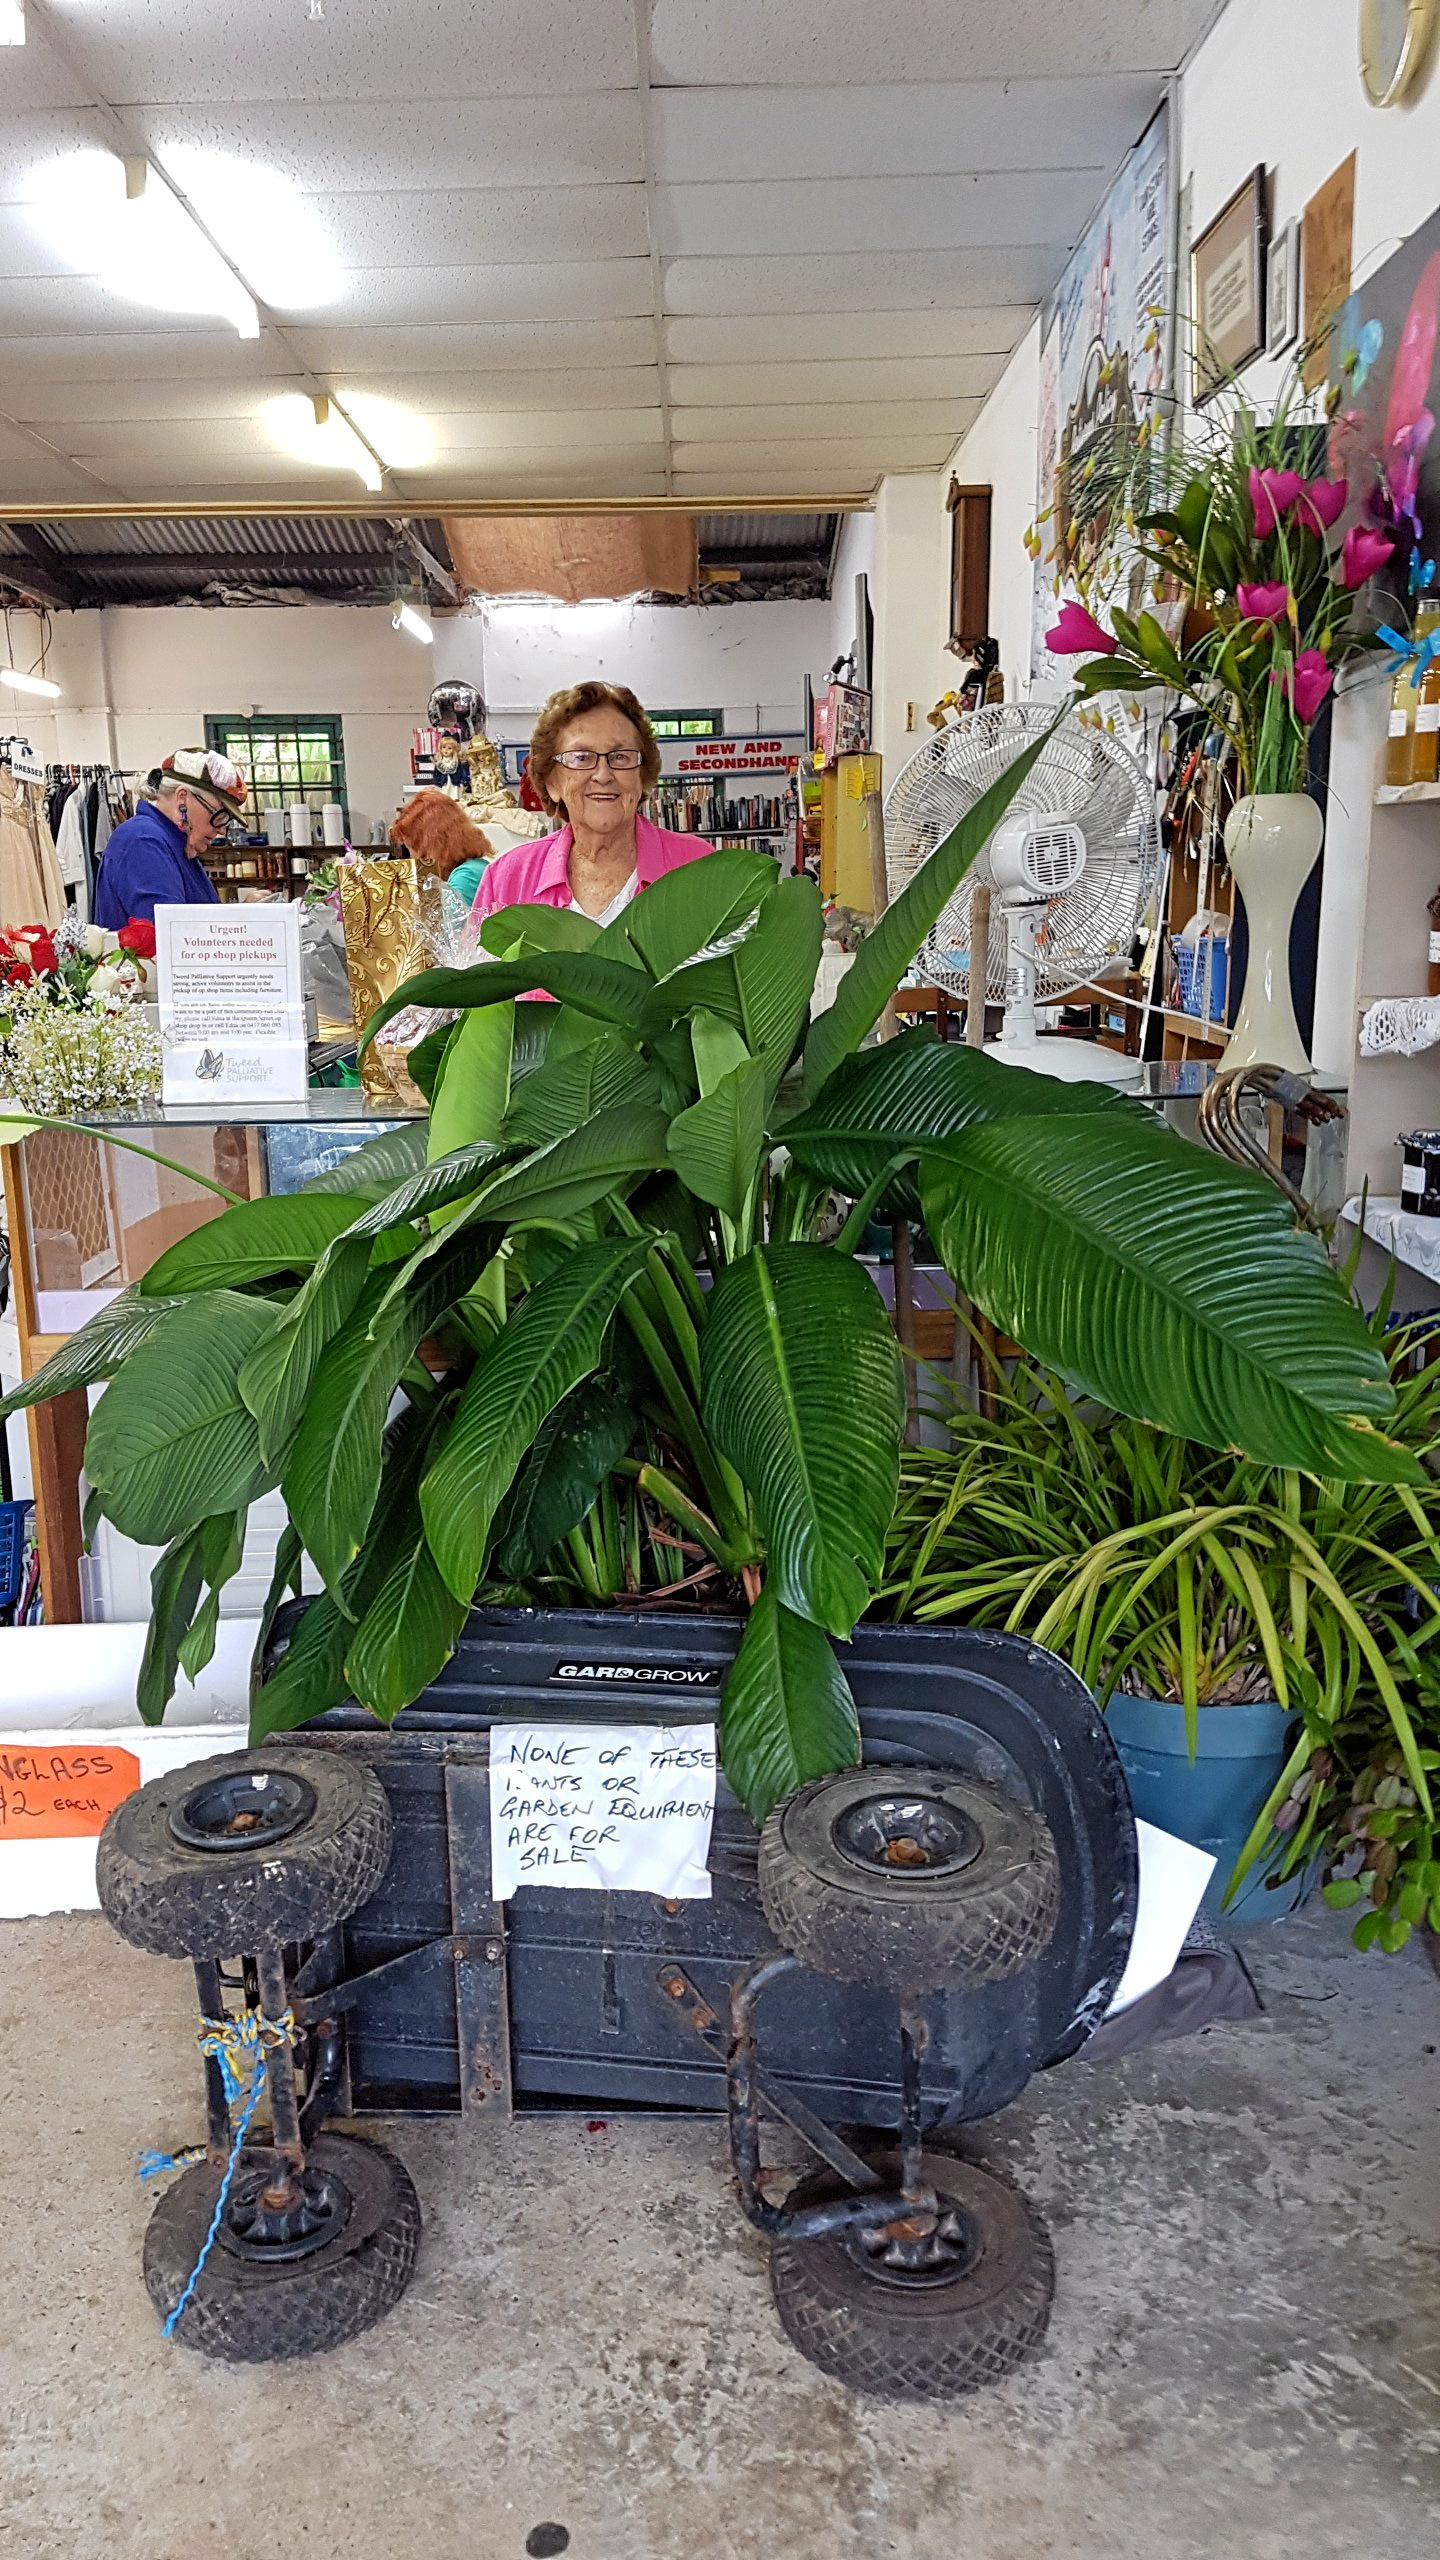 TALL TALE: Edna Gorton with the plants picked up from the wrong house.